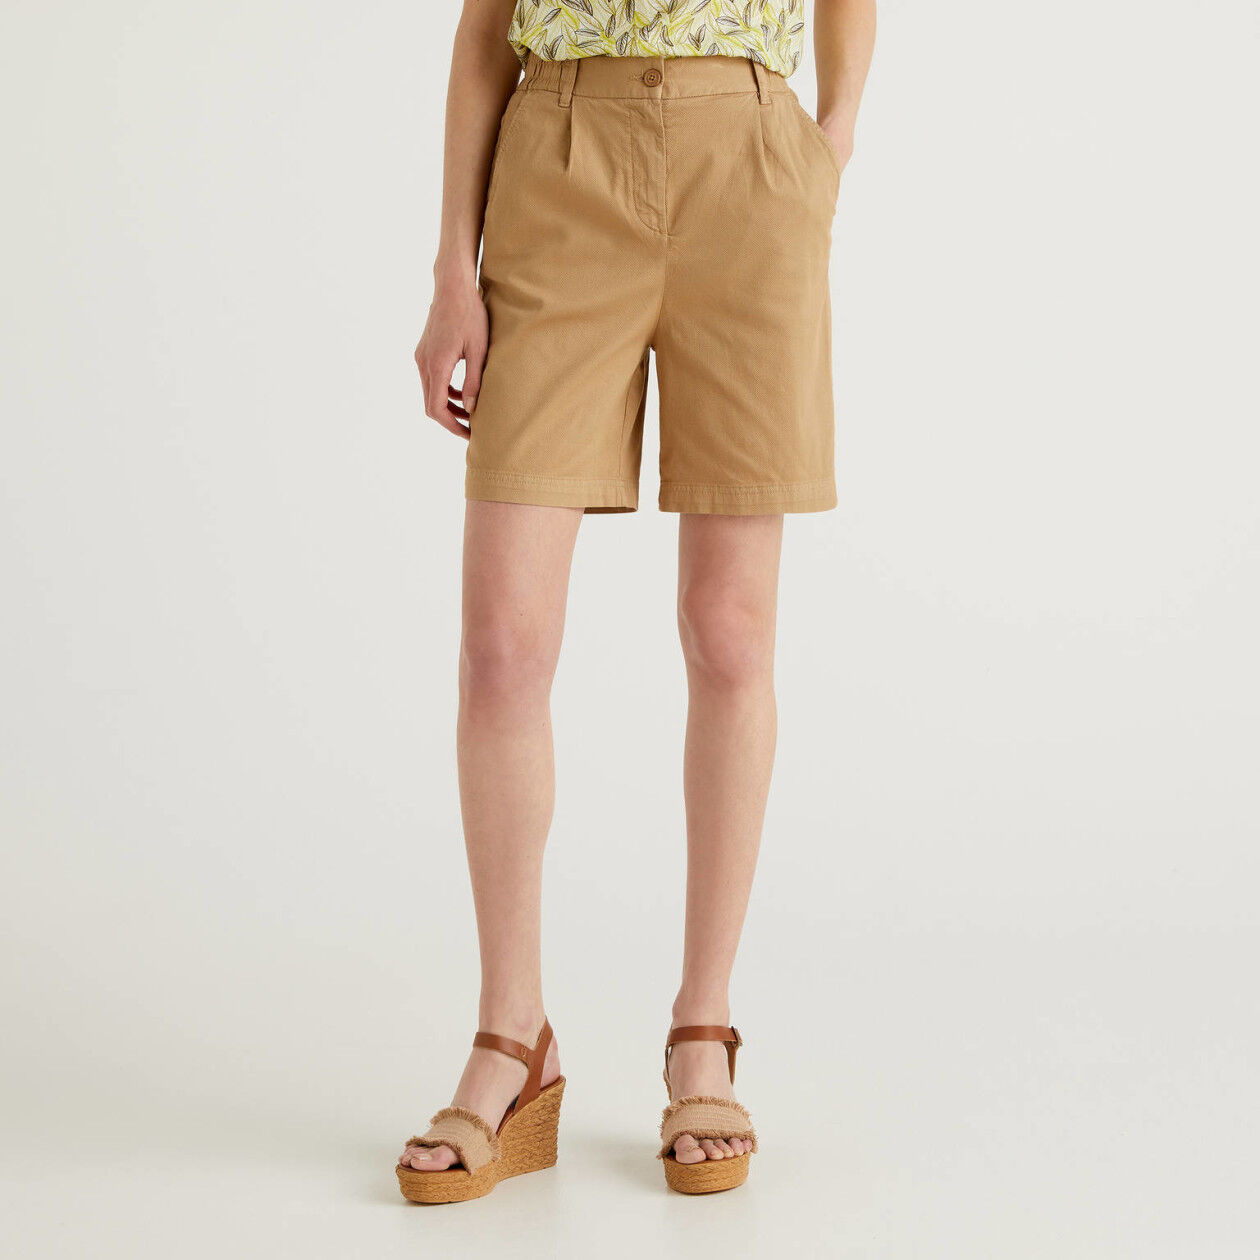 Solid color stretch cotton bermudas